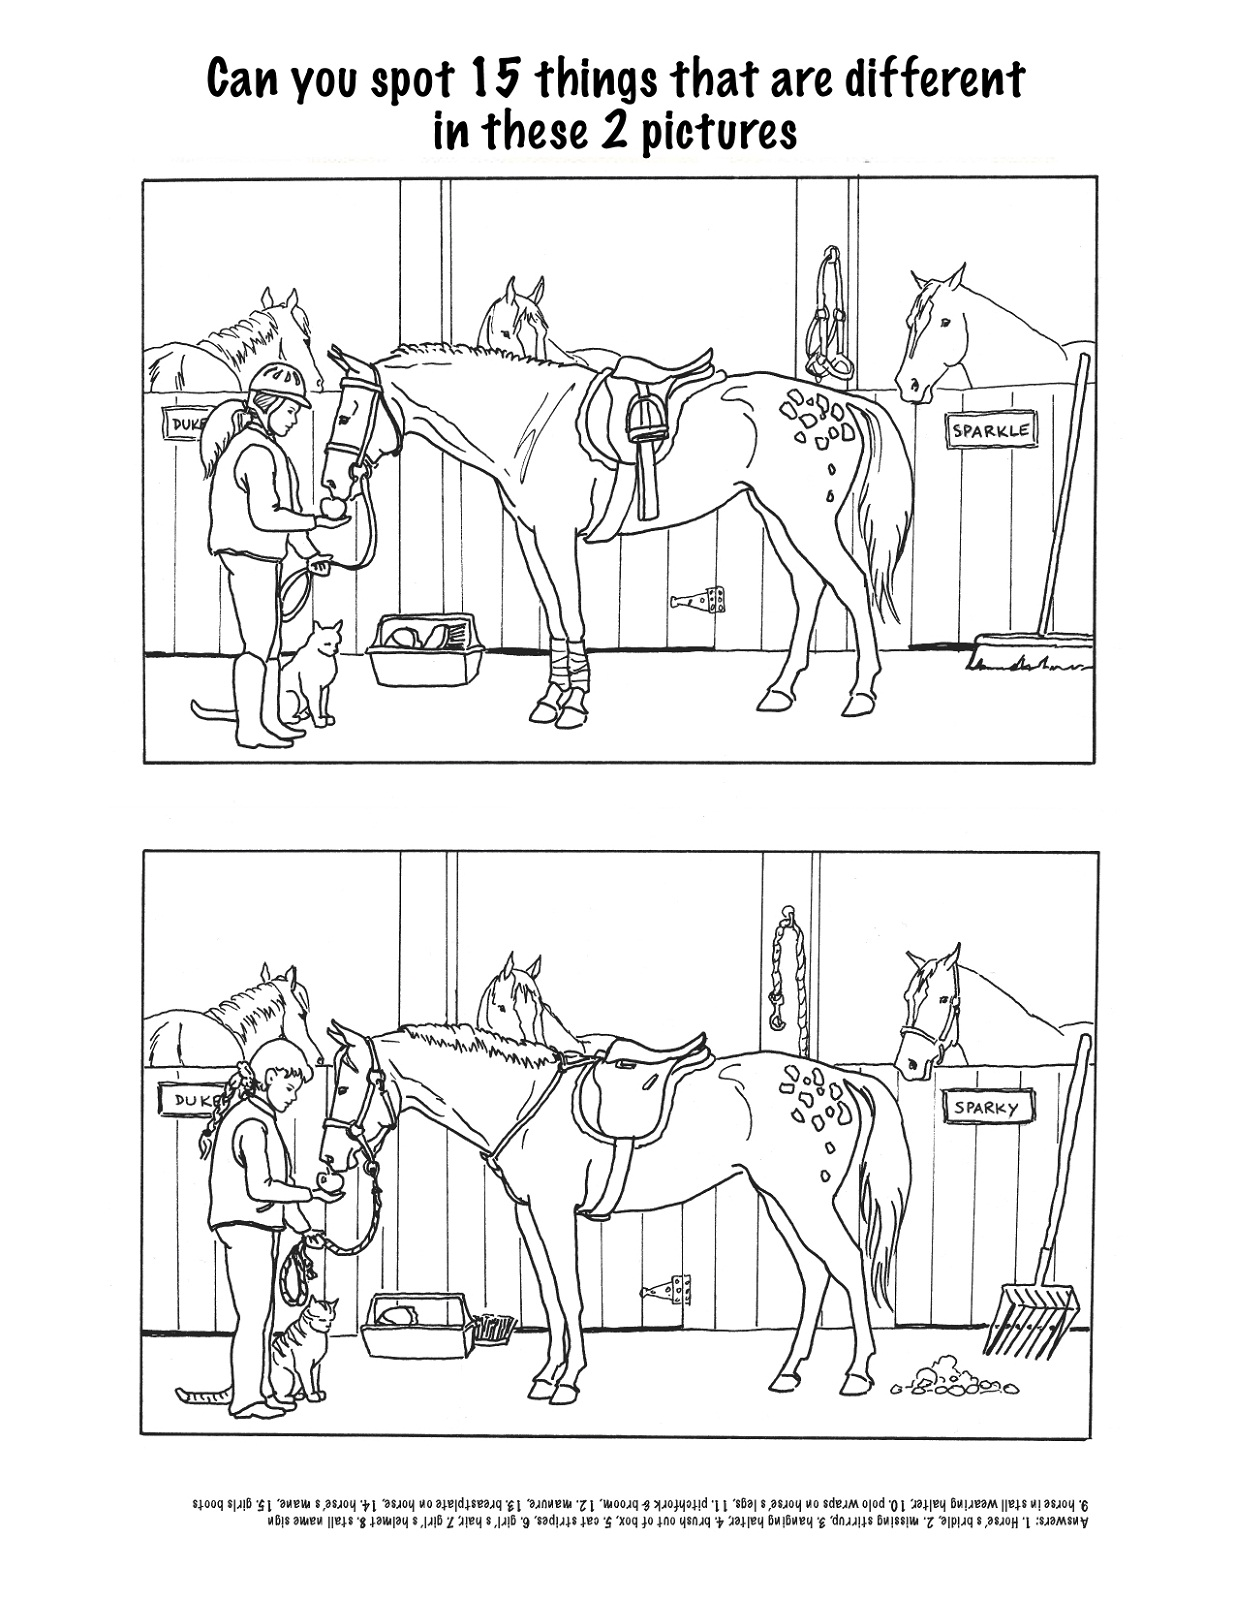 horse-activities-for-kids-difference